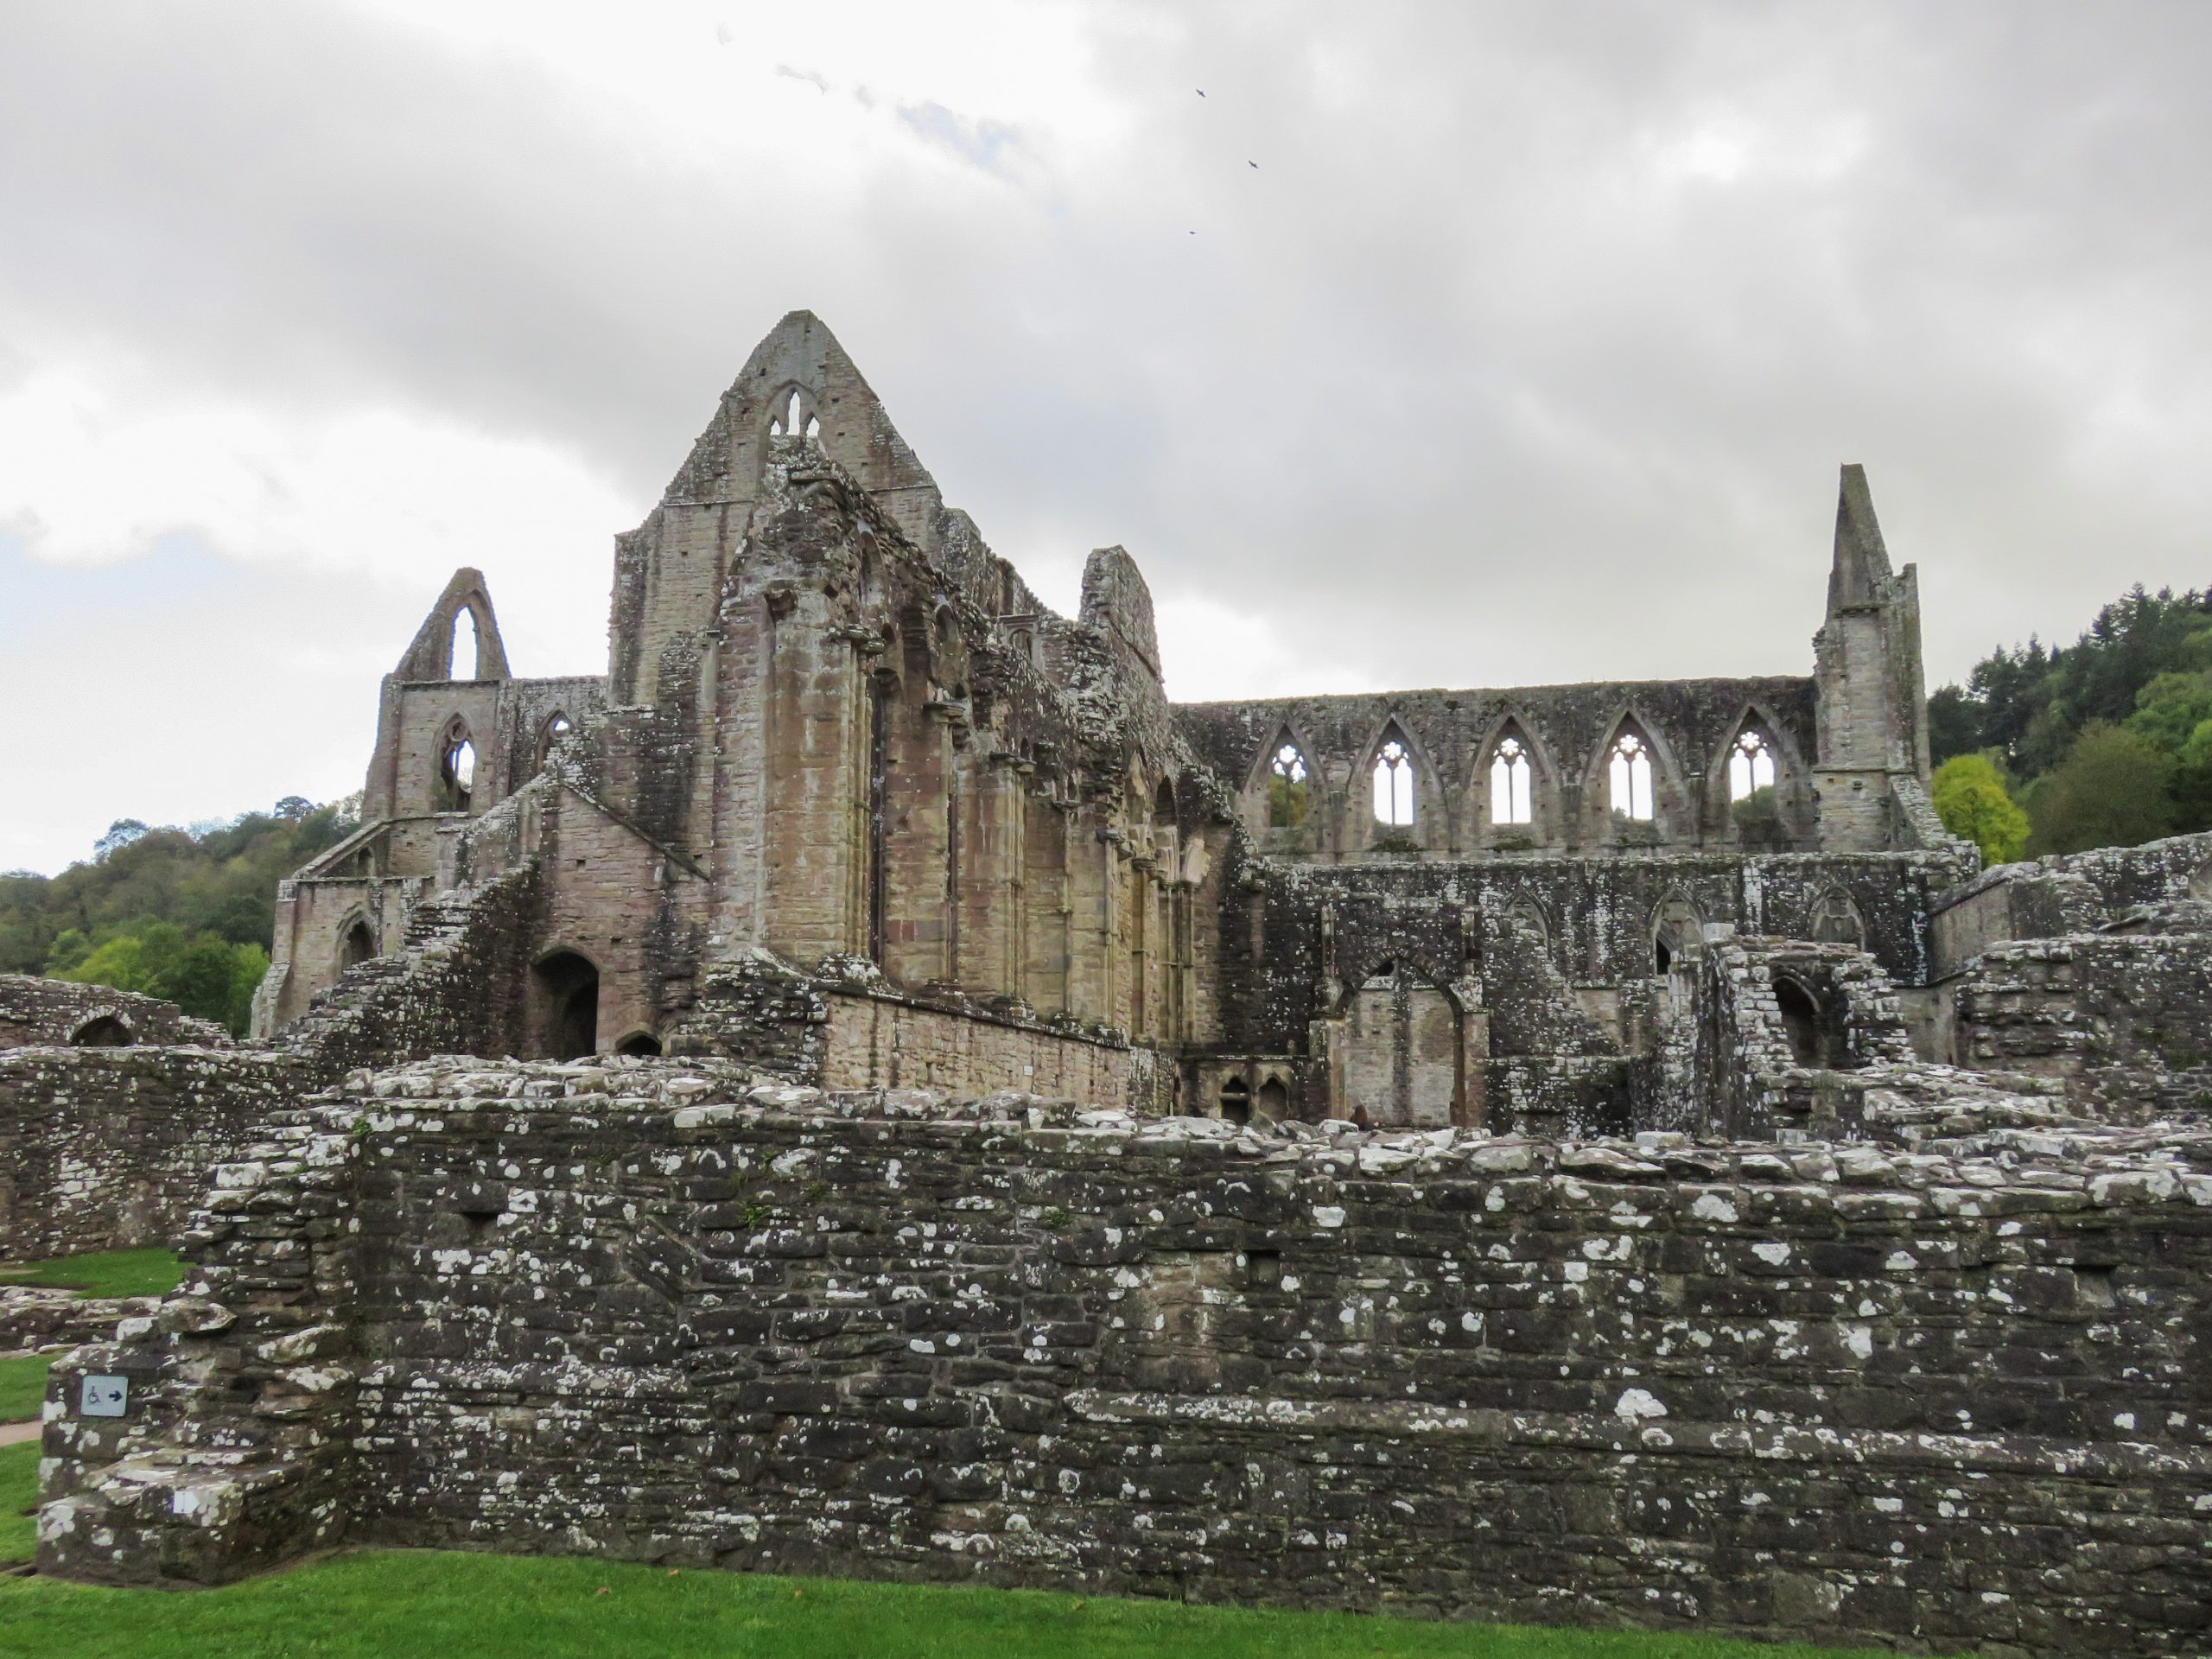 view of entirety of tintern abbey from ruined monastic buildings